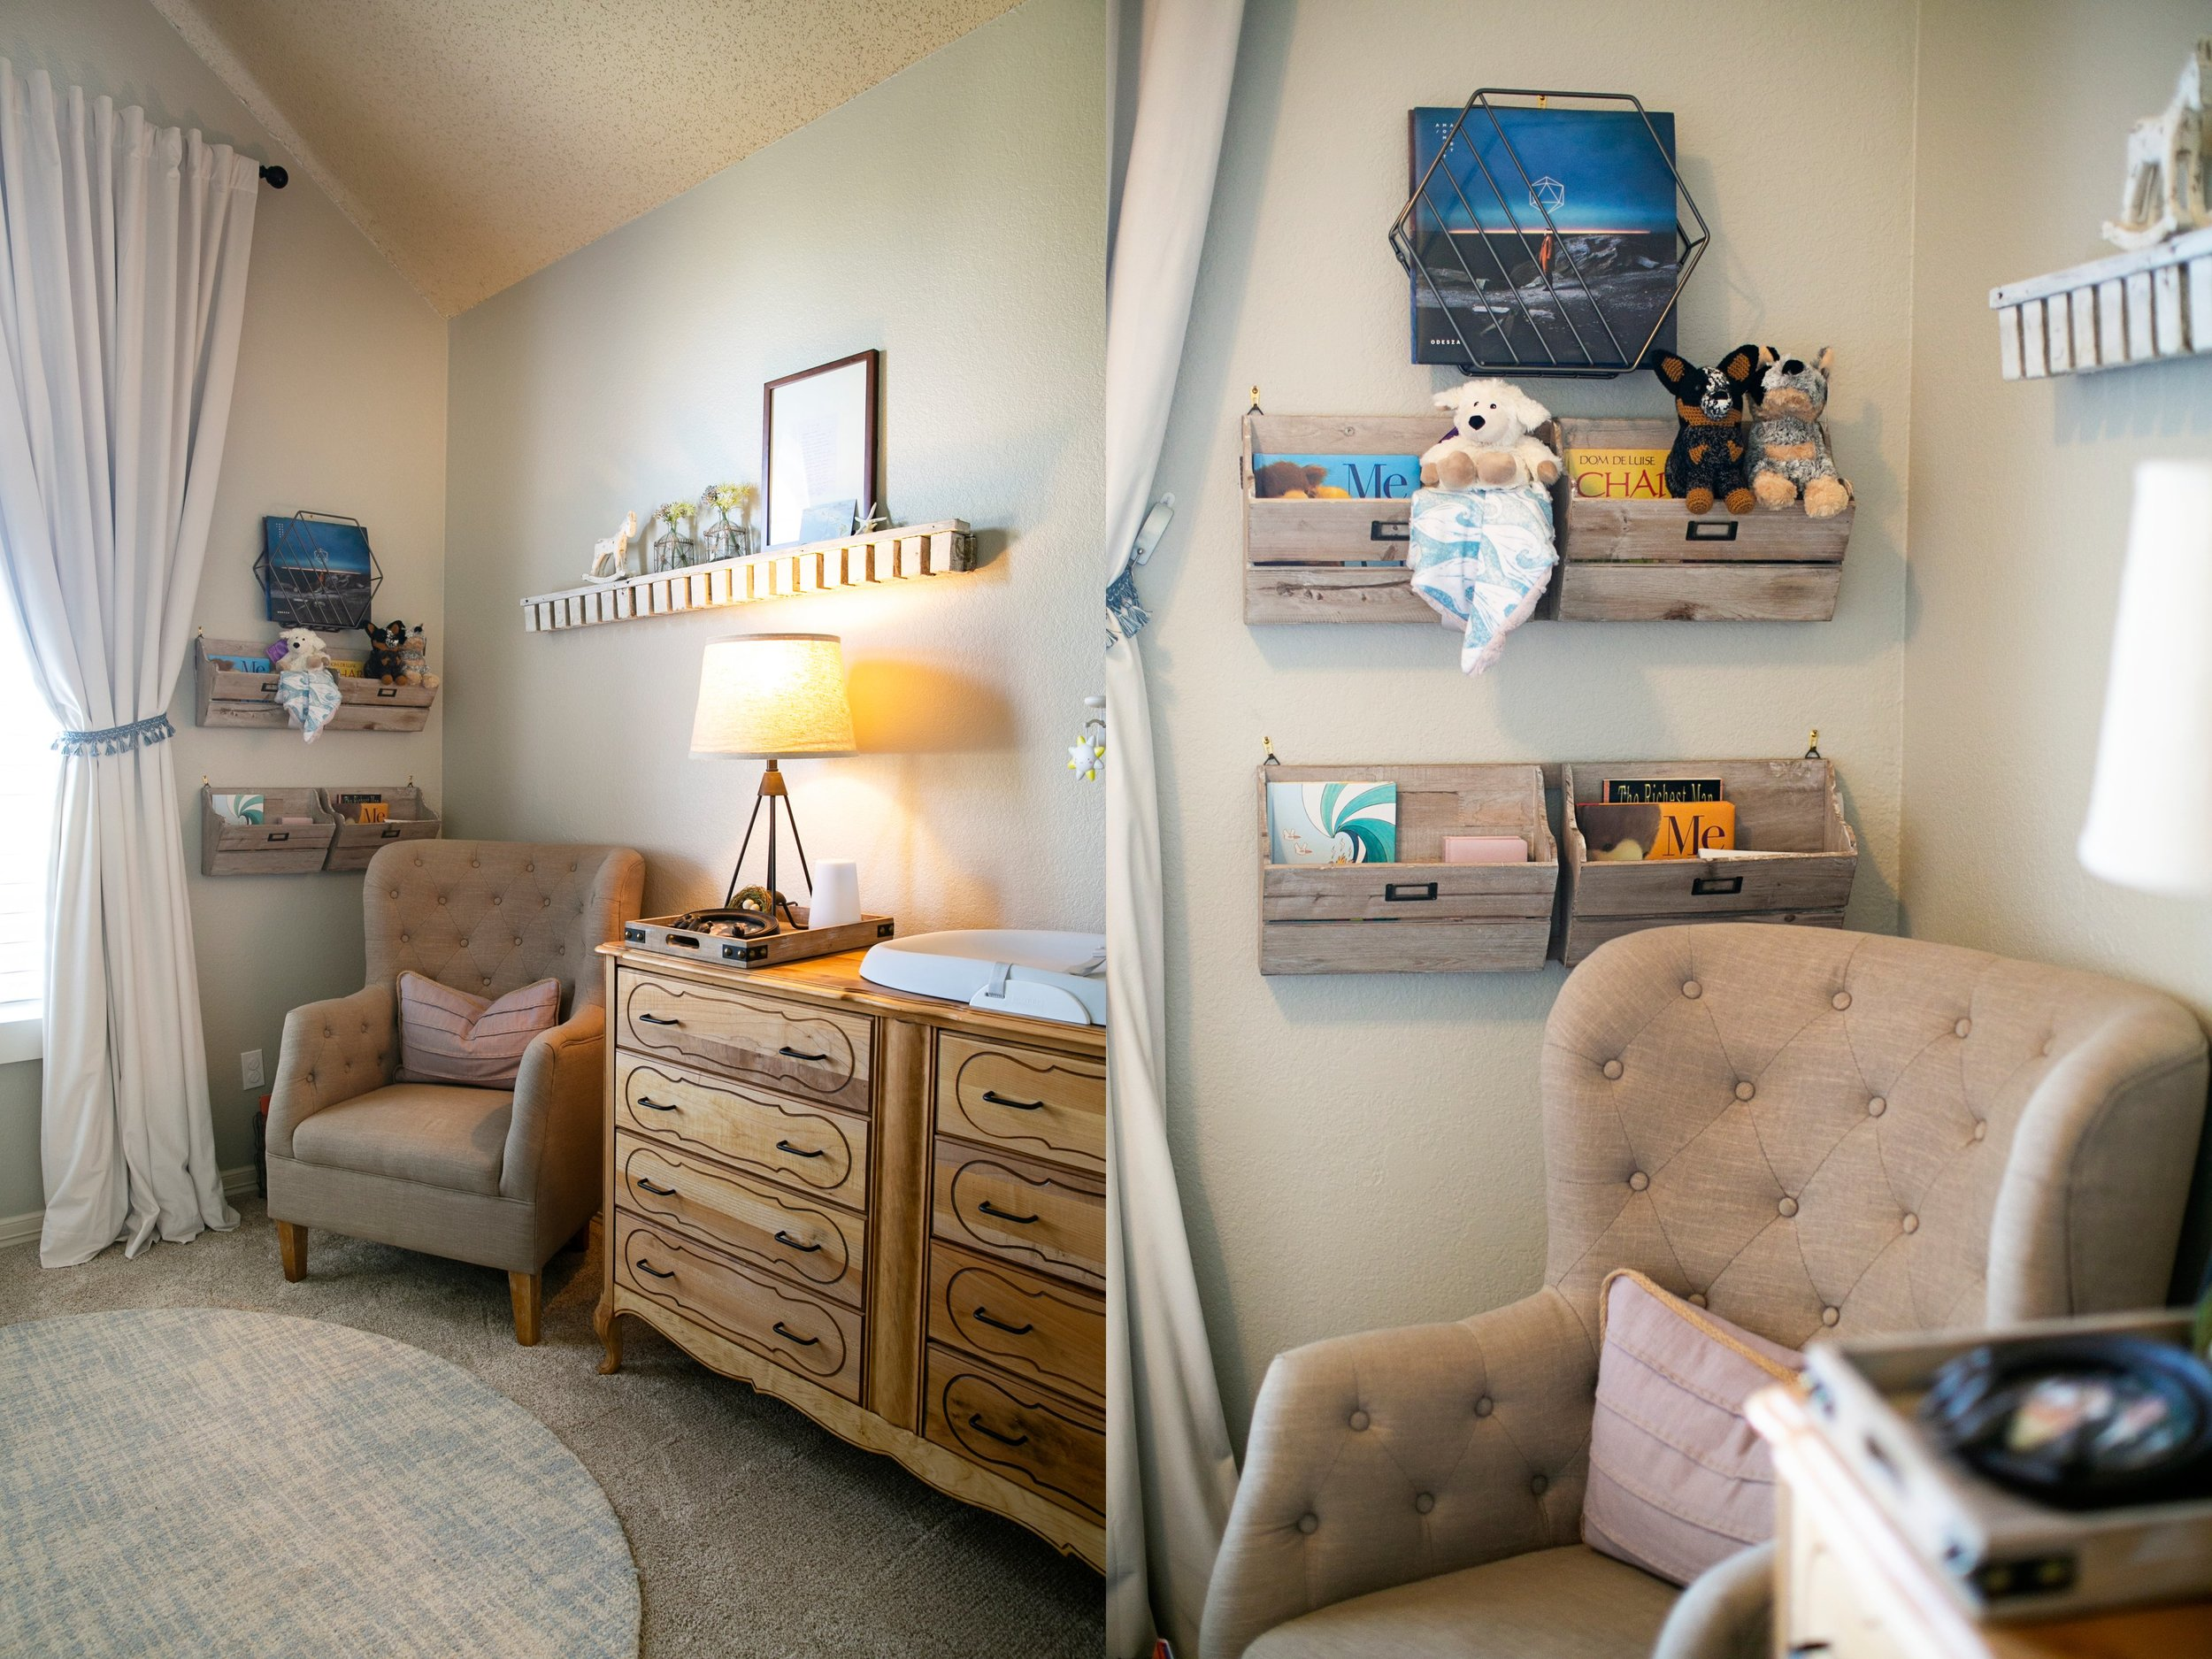 Linda_McMillan_Photography_Costal_Beach_Nursery_06.jpg